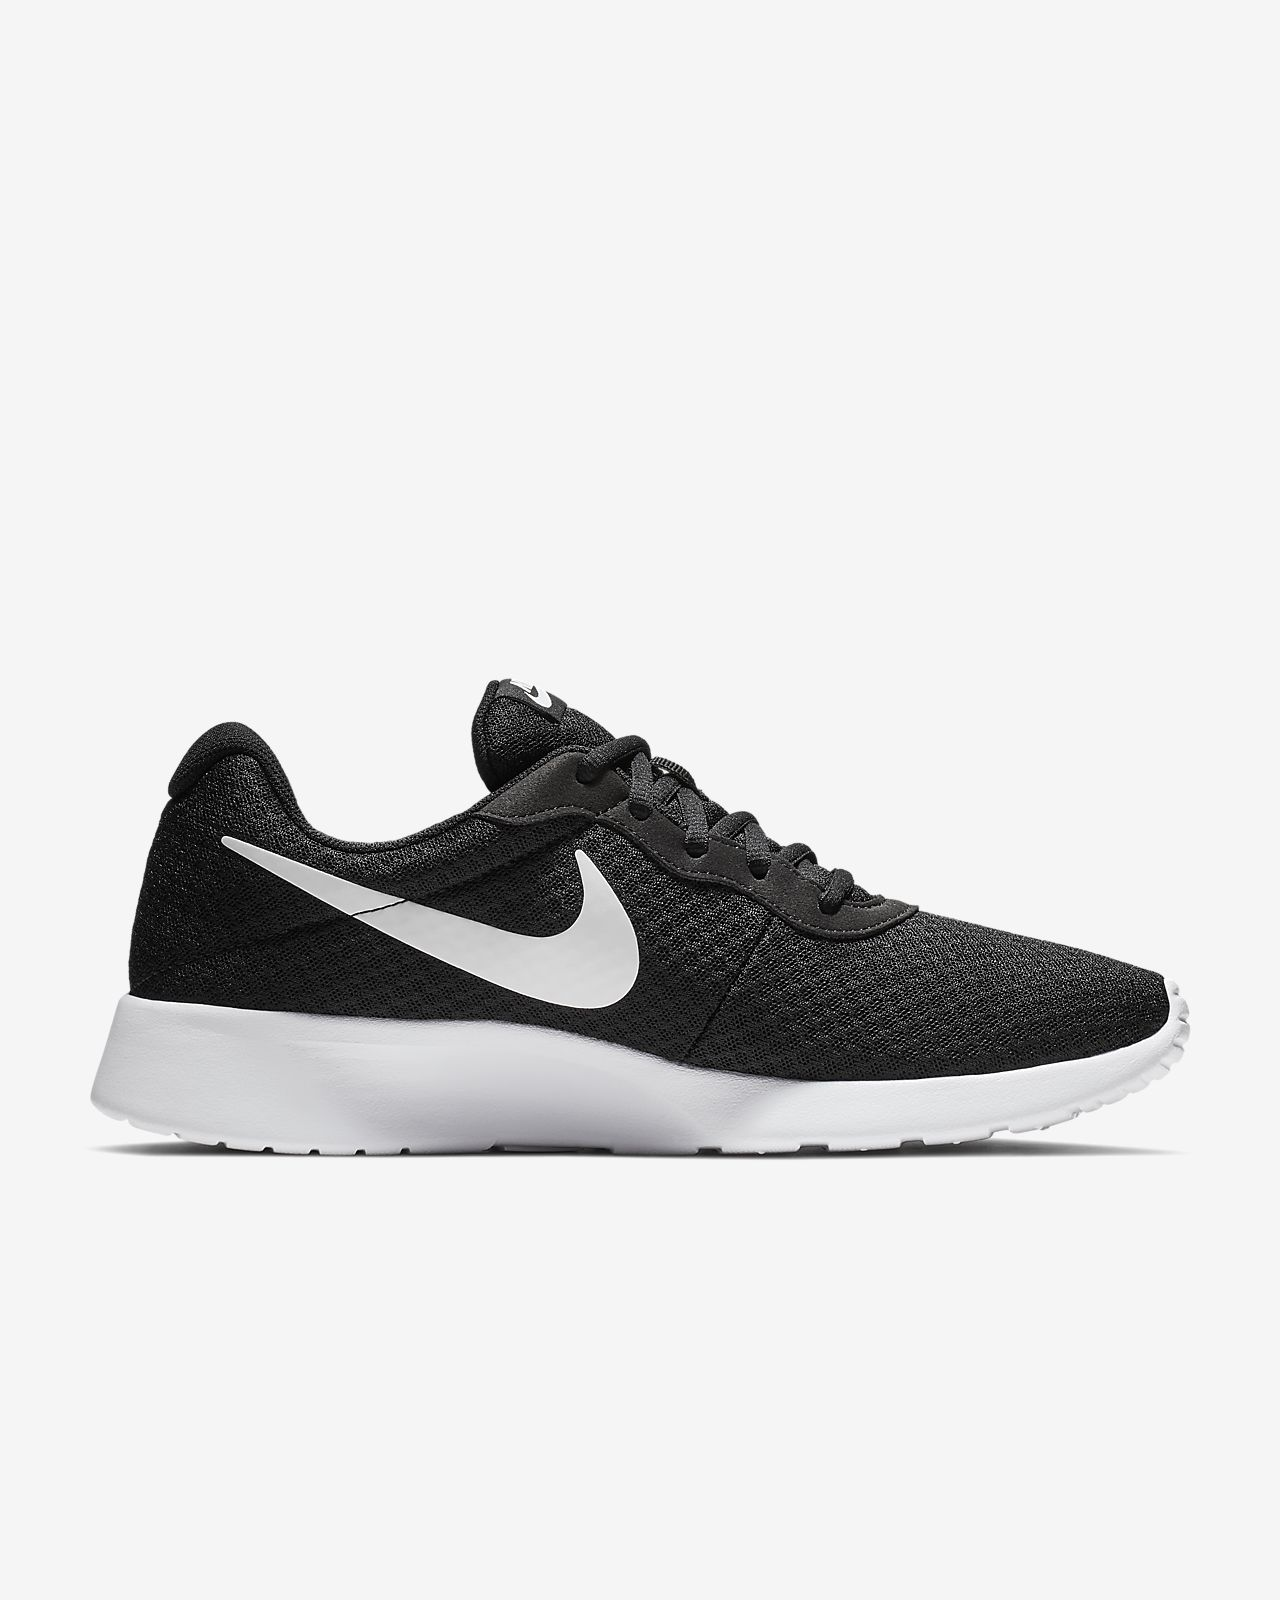 brand new 9ab0d d5a86 ... Shoes for Men, Women   Kids Online   Myntra. Nike Tanjun